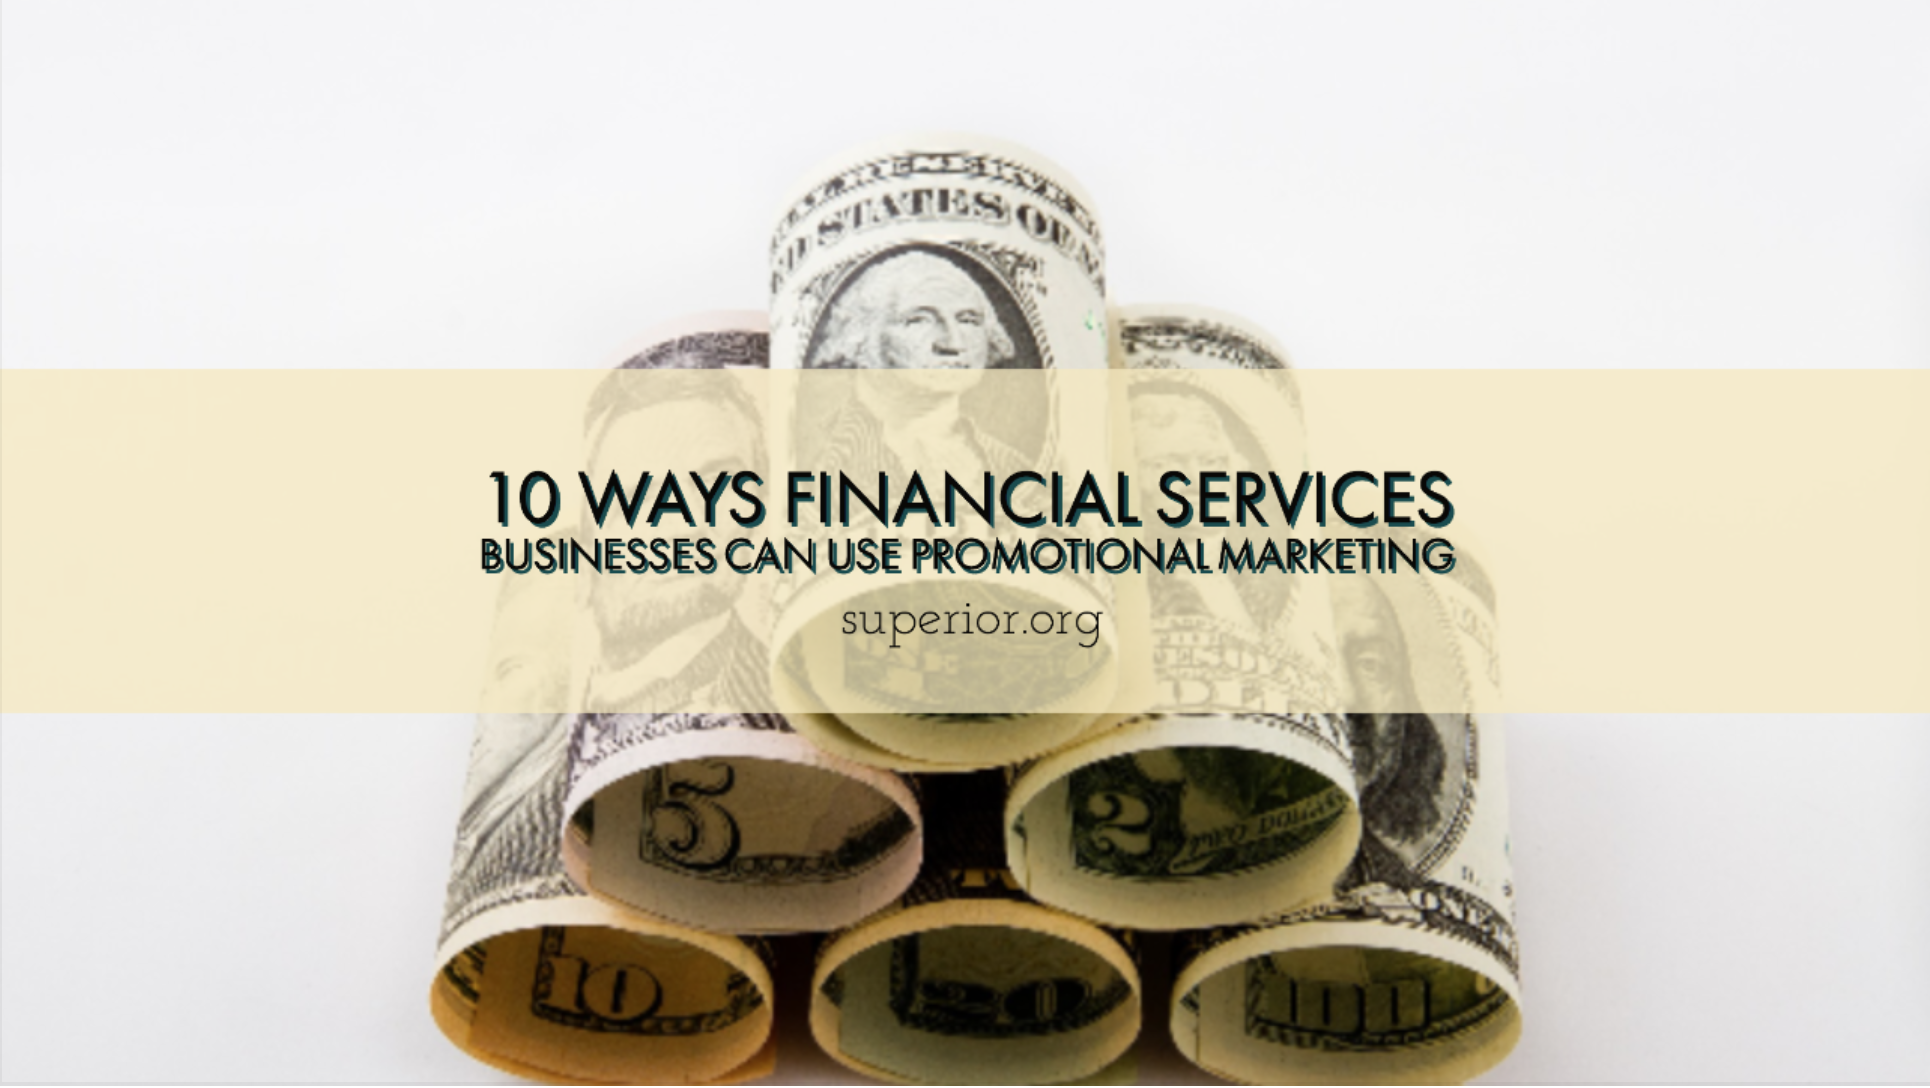 How To Increase Sales At Your Financial Services Business With Promotional Marketing